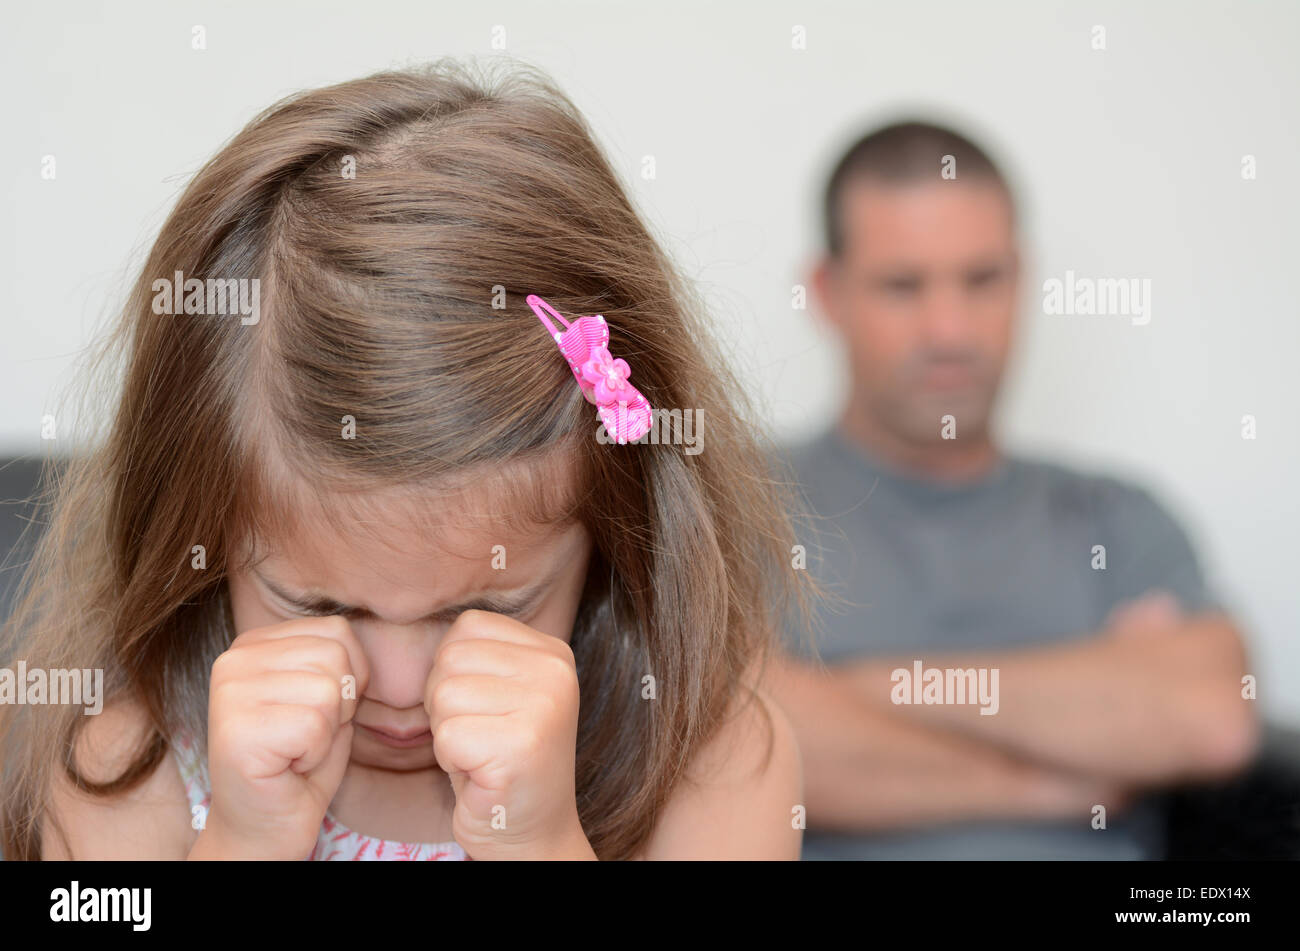 Little girl (age 05) having a temper tantrum with her desperate father in background - Stock Image